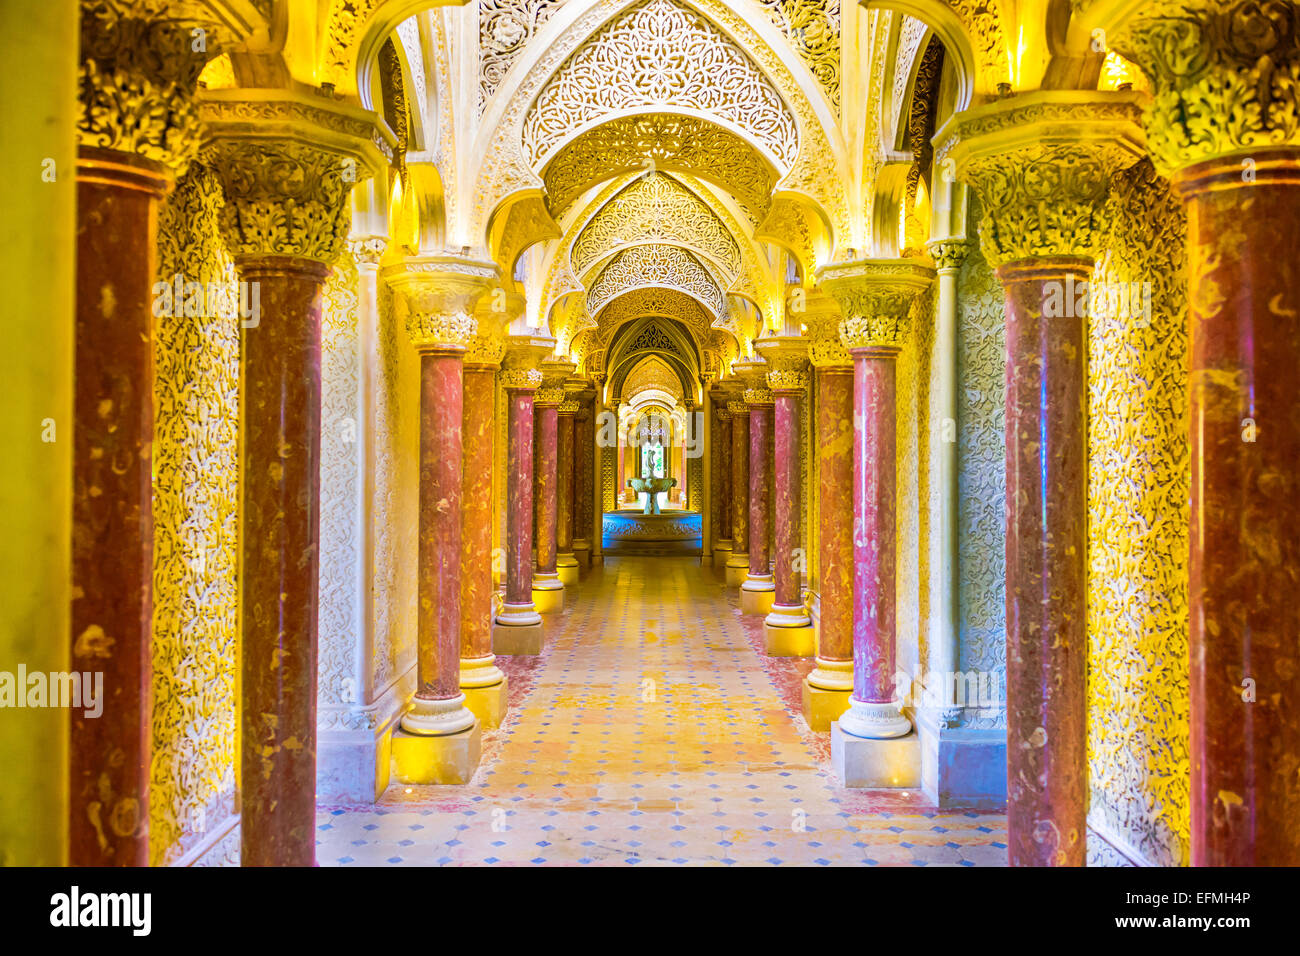 Monserrate Palace in Sintra, Portugal. Stockbild